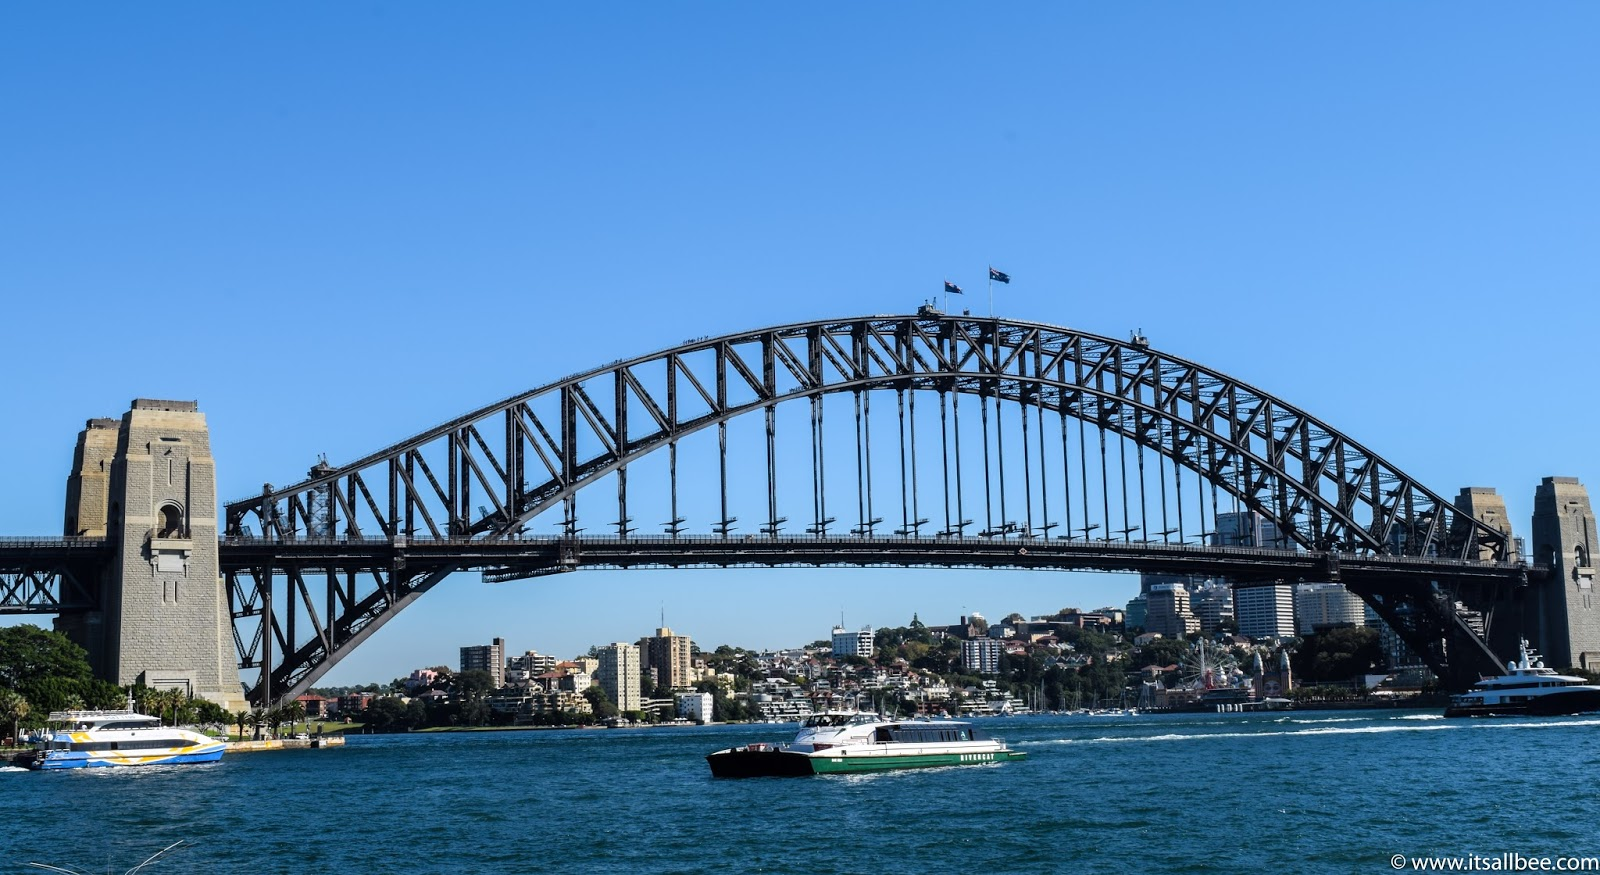 Top 10 Things To Do In Sydney Australia - Places To Visit & Where To Stay #australia #traveltip #sydney #trips #citybreaks